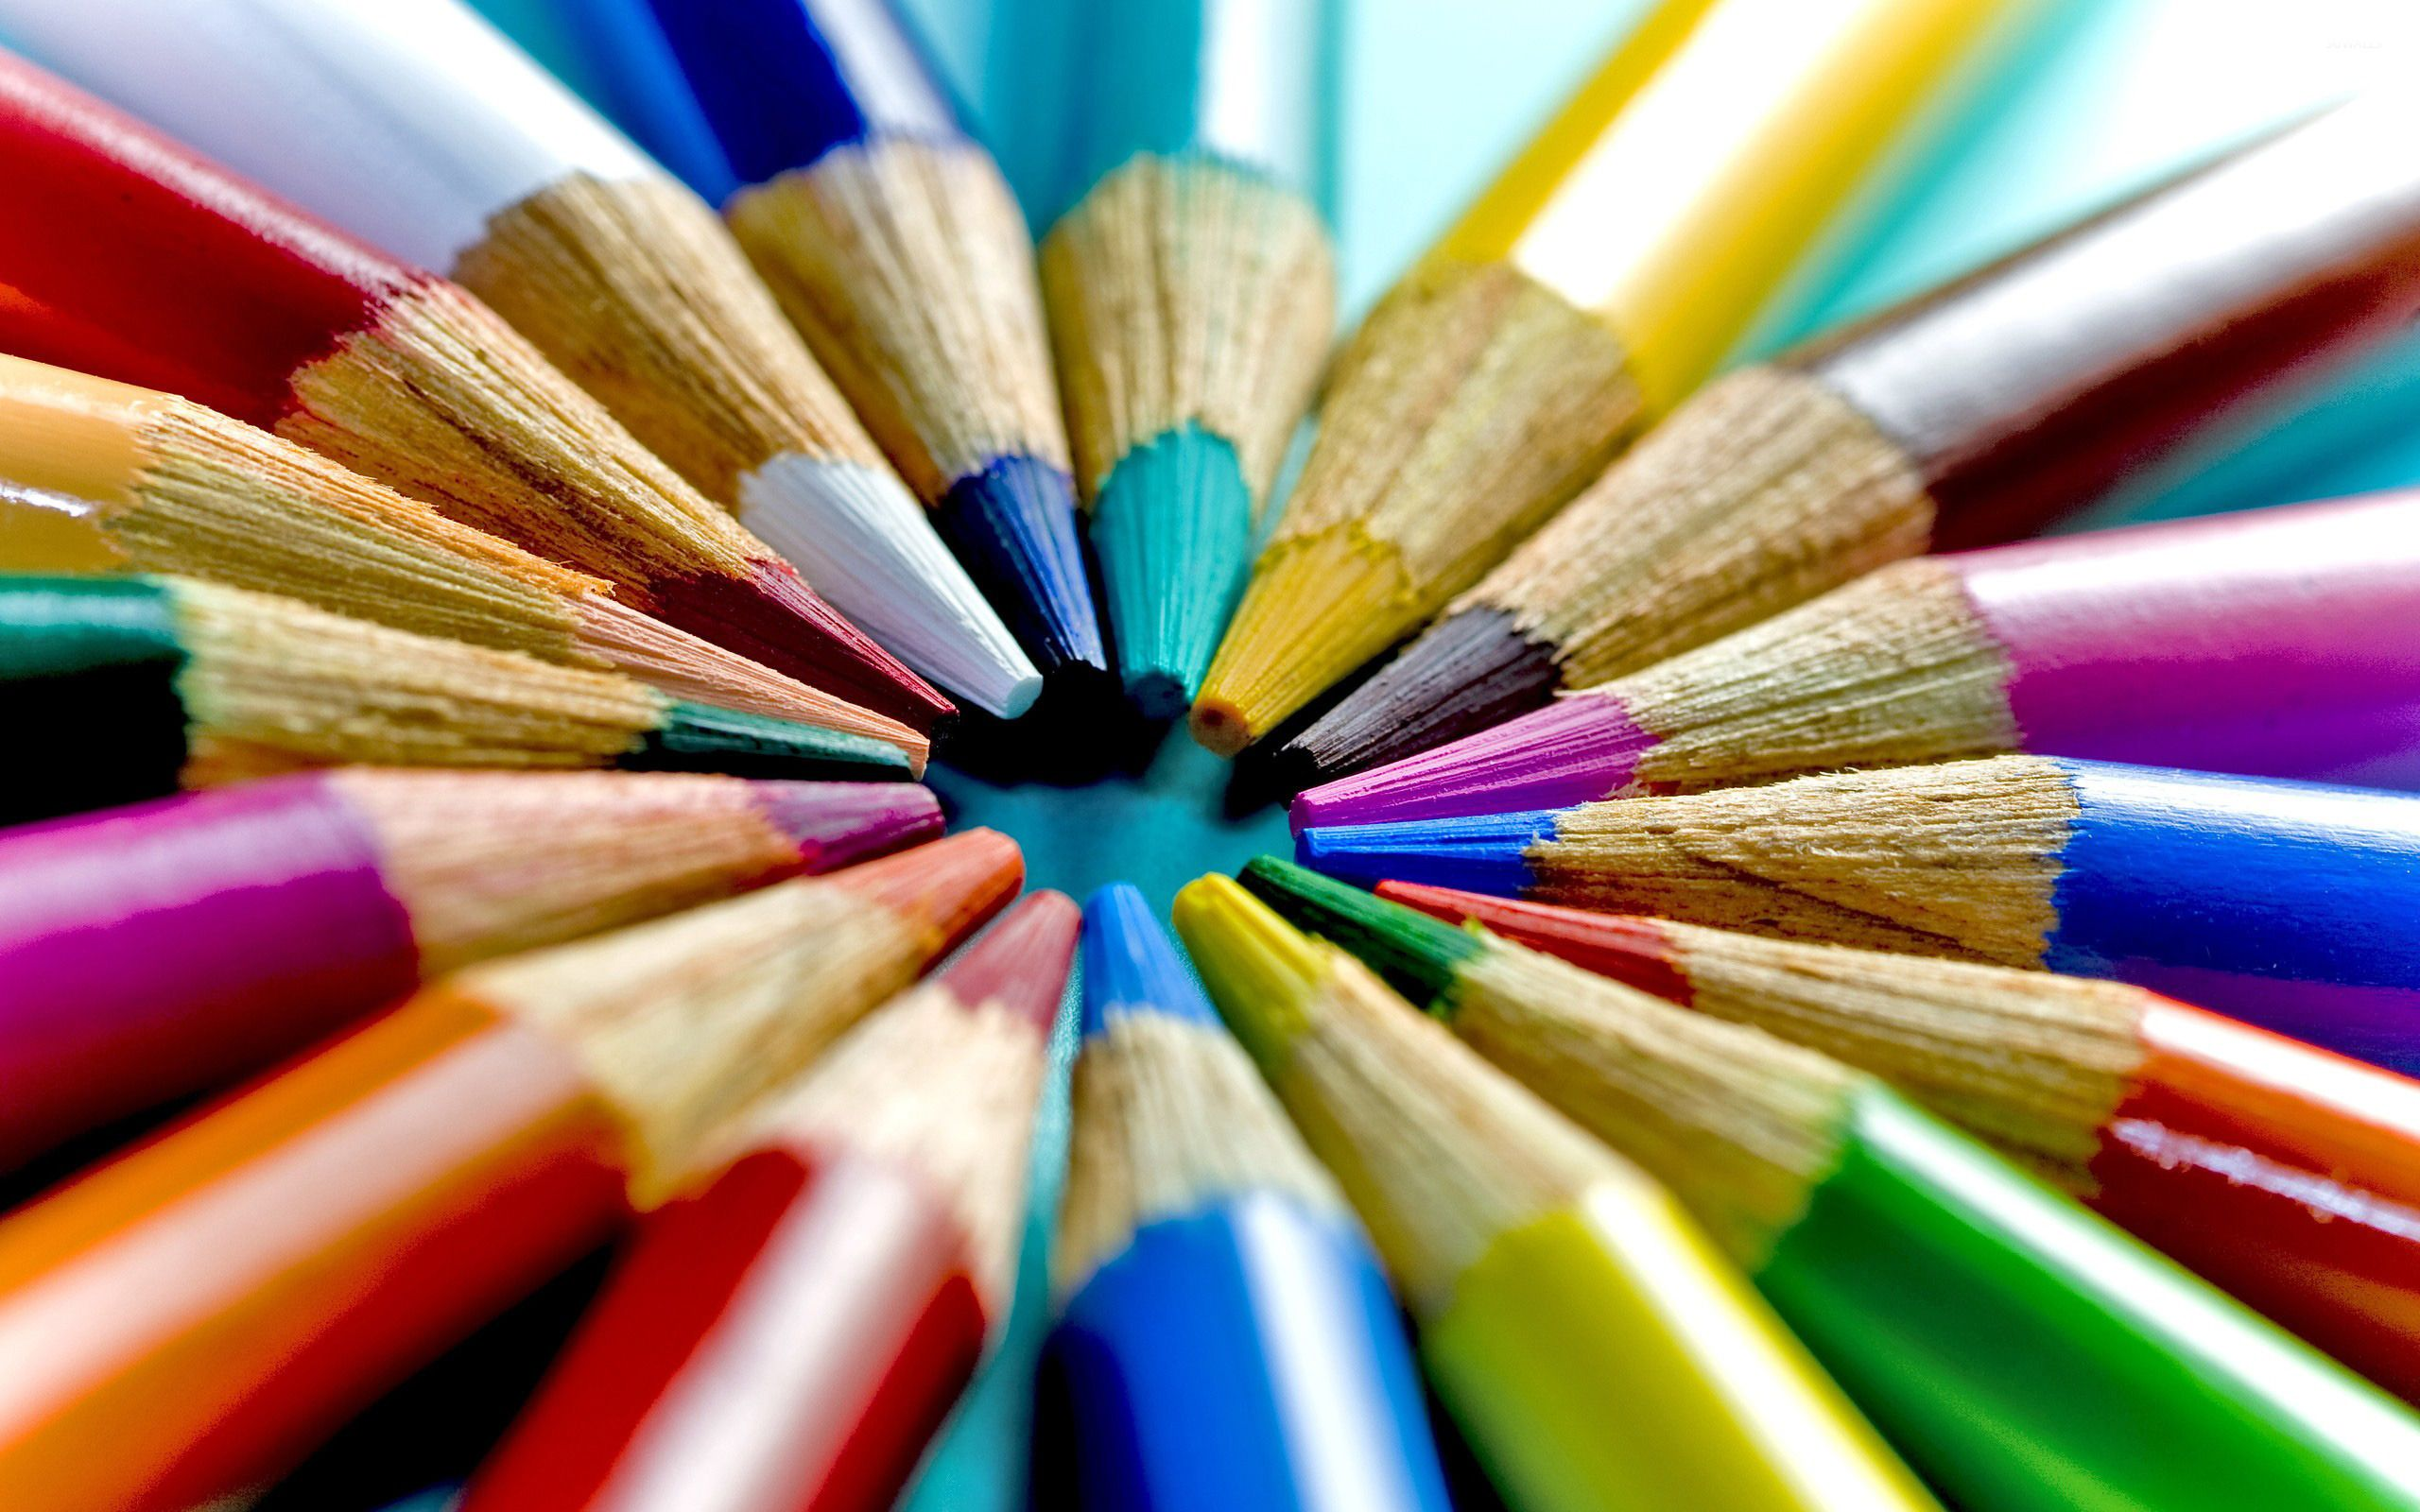 free pencil images